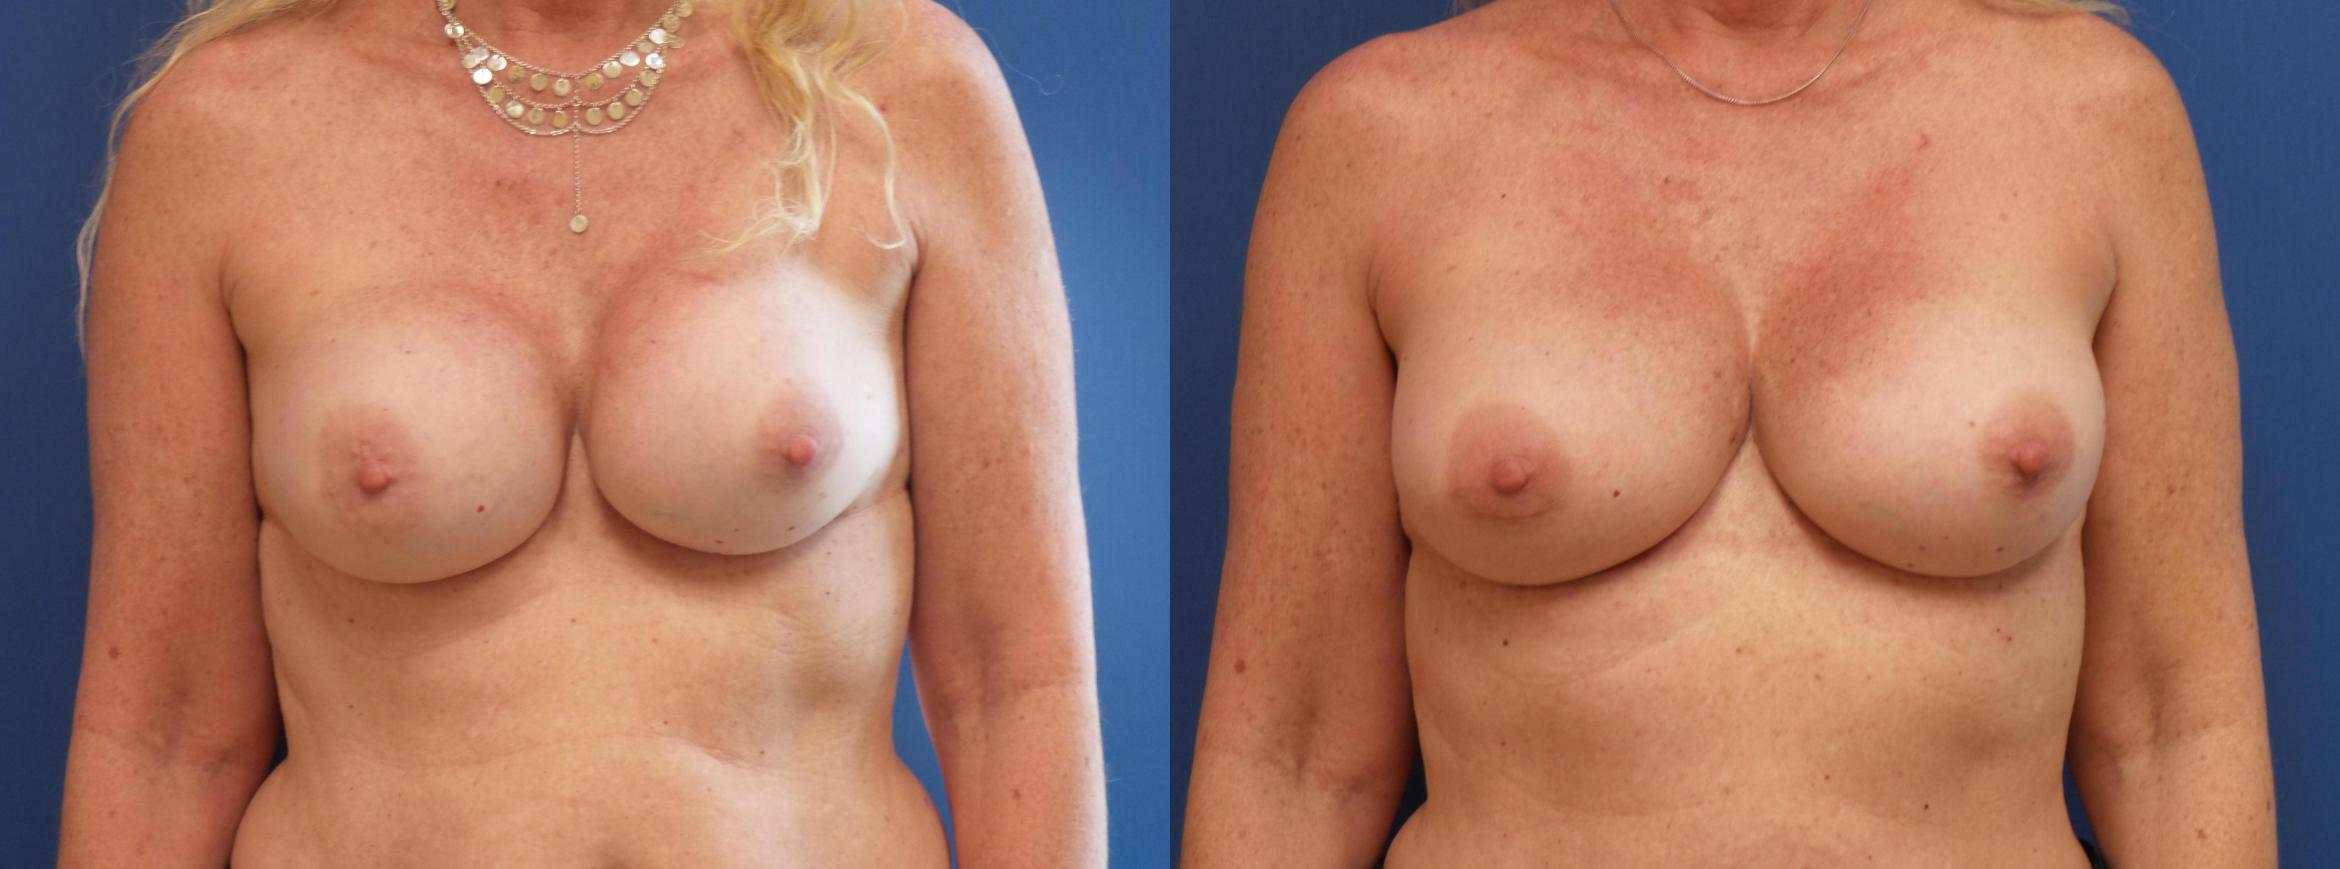 Breast Implant Exchange Case 281 Before & After View #1 | Webster, TX | Houston Plastic and Reconstructive Surgery